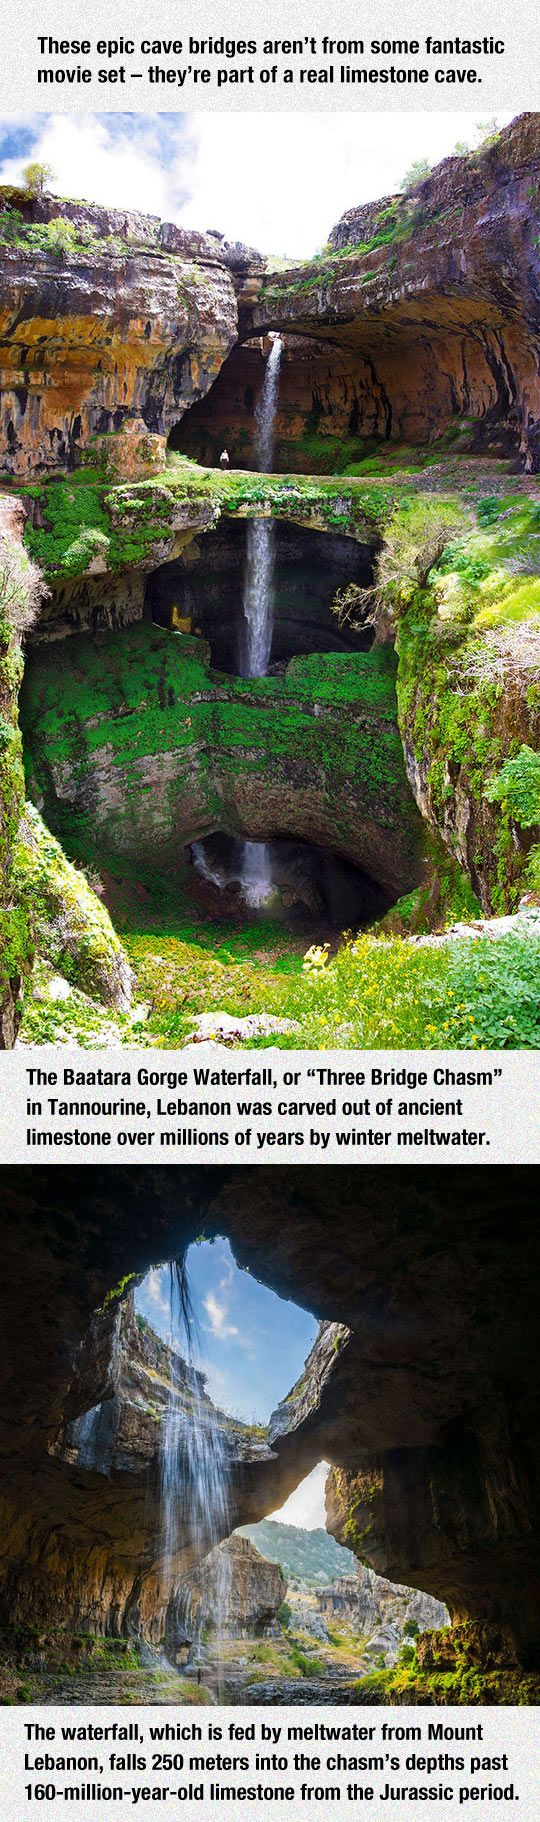 The Cave Of The Three Bridges. Tannourine Lebanon